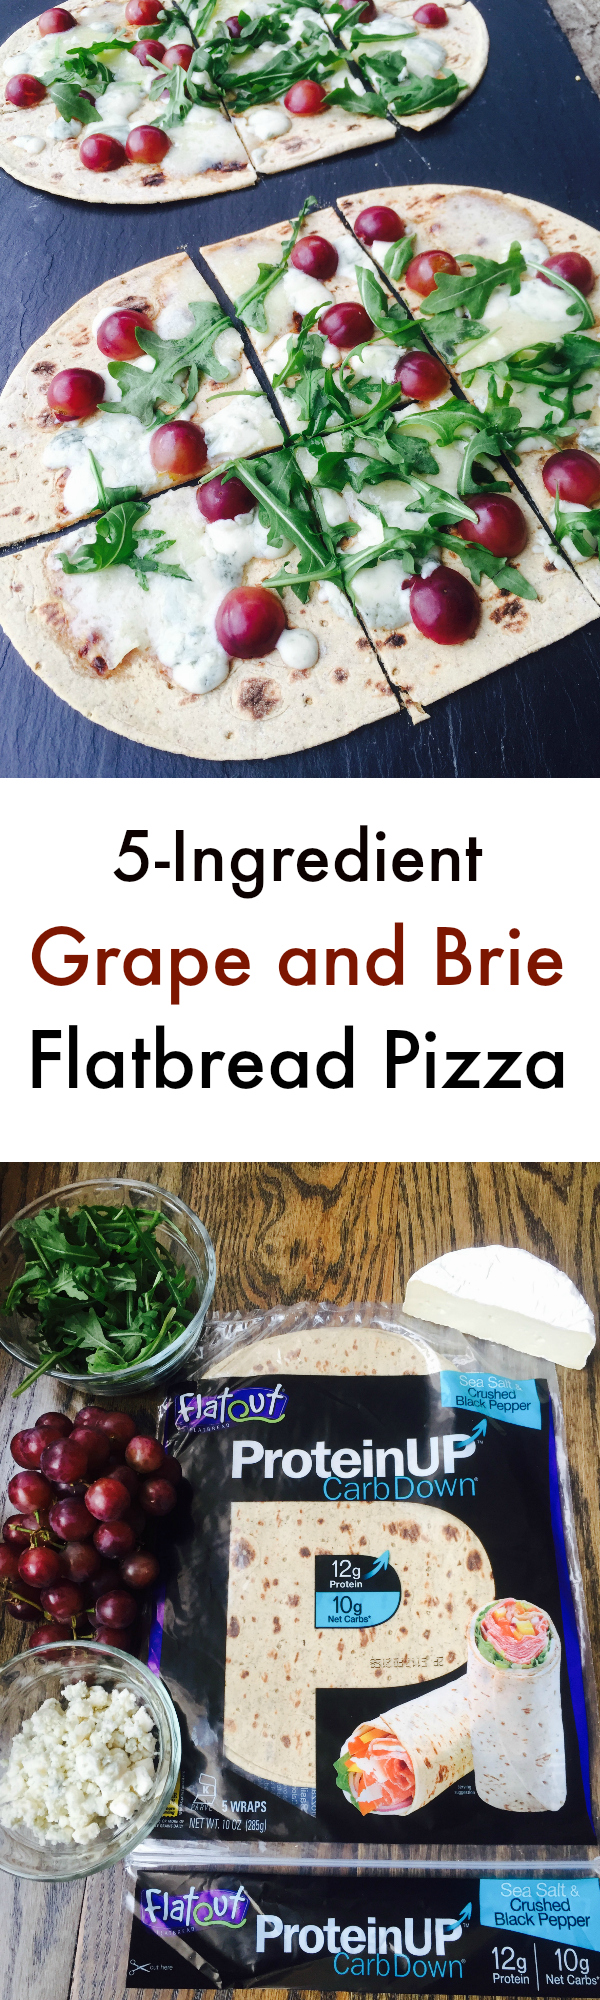 Grape and Brie Flatbread Pizza